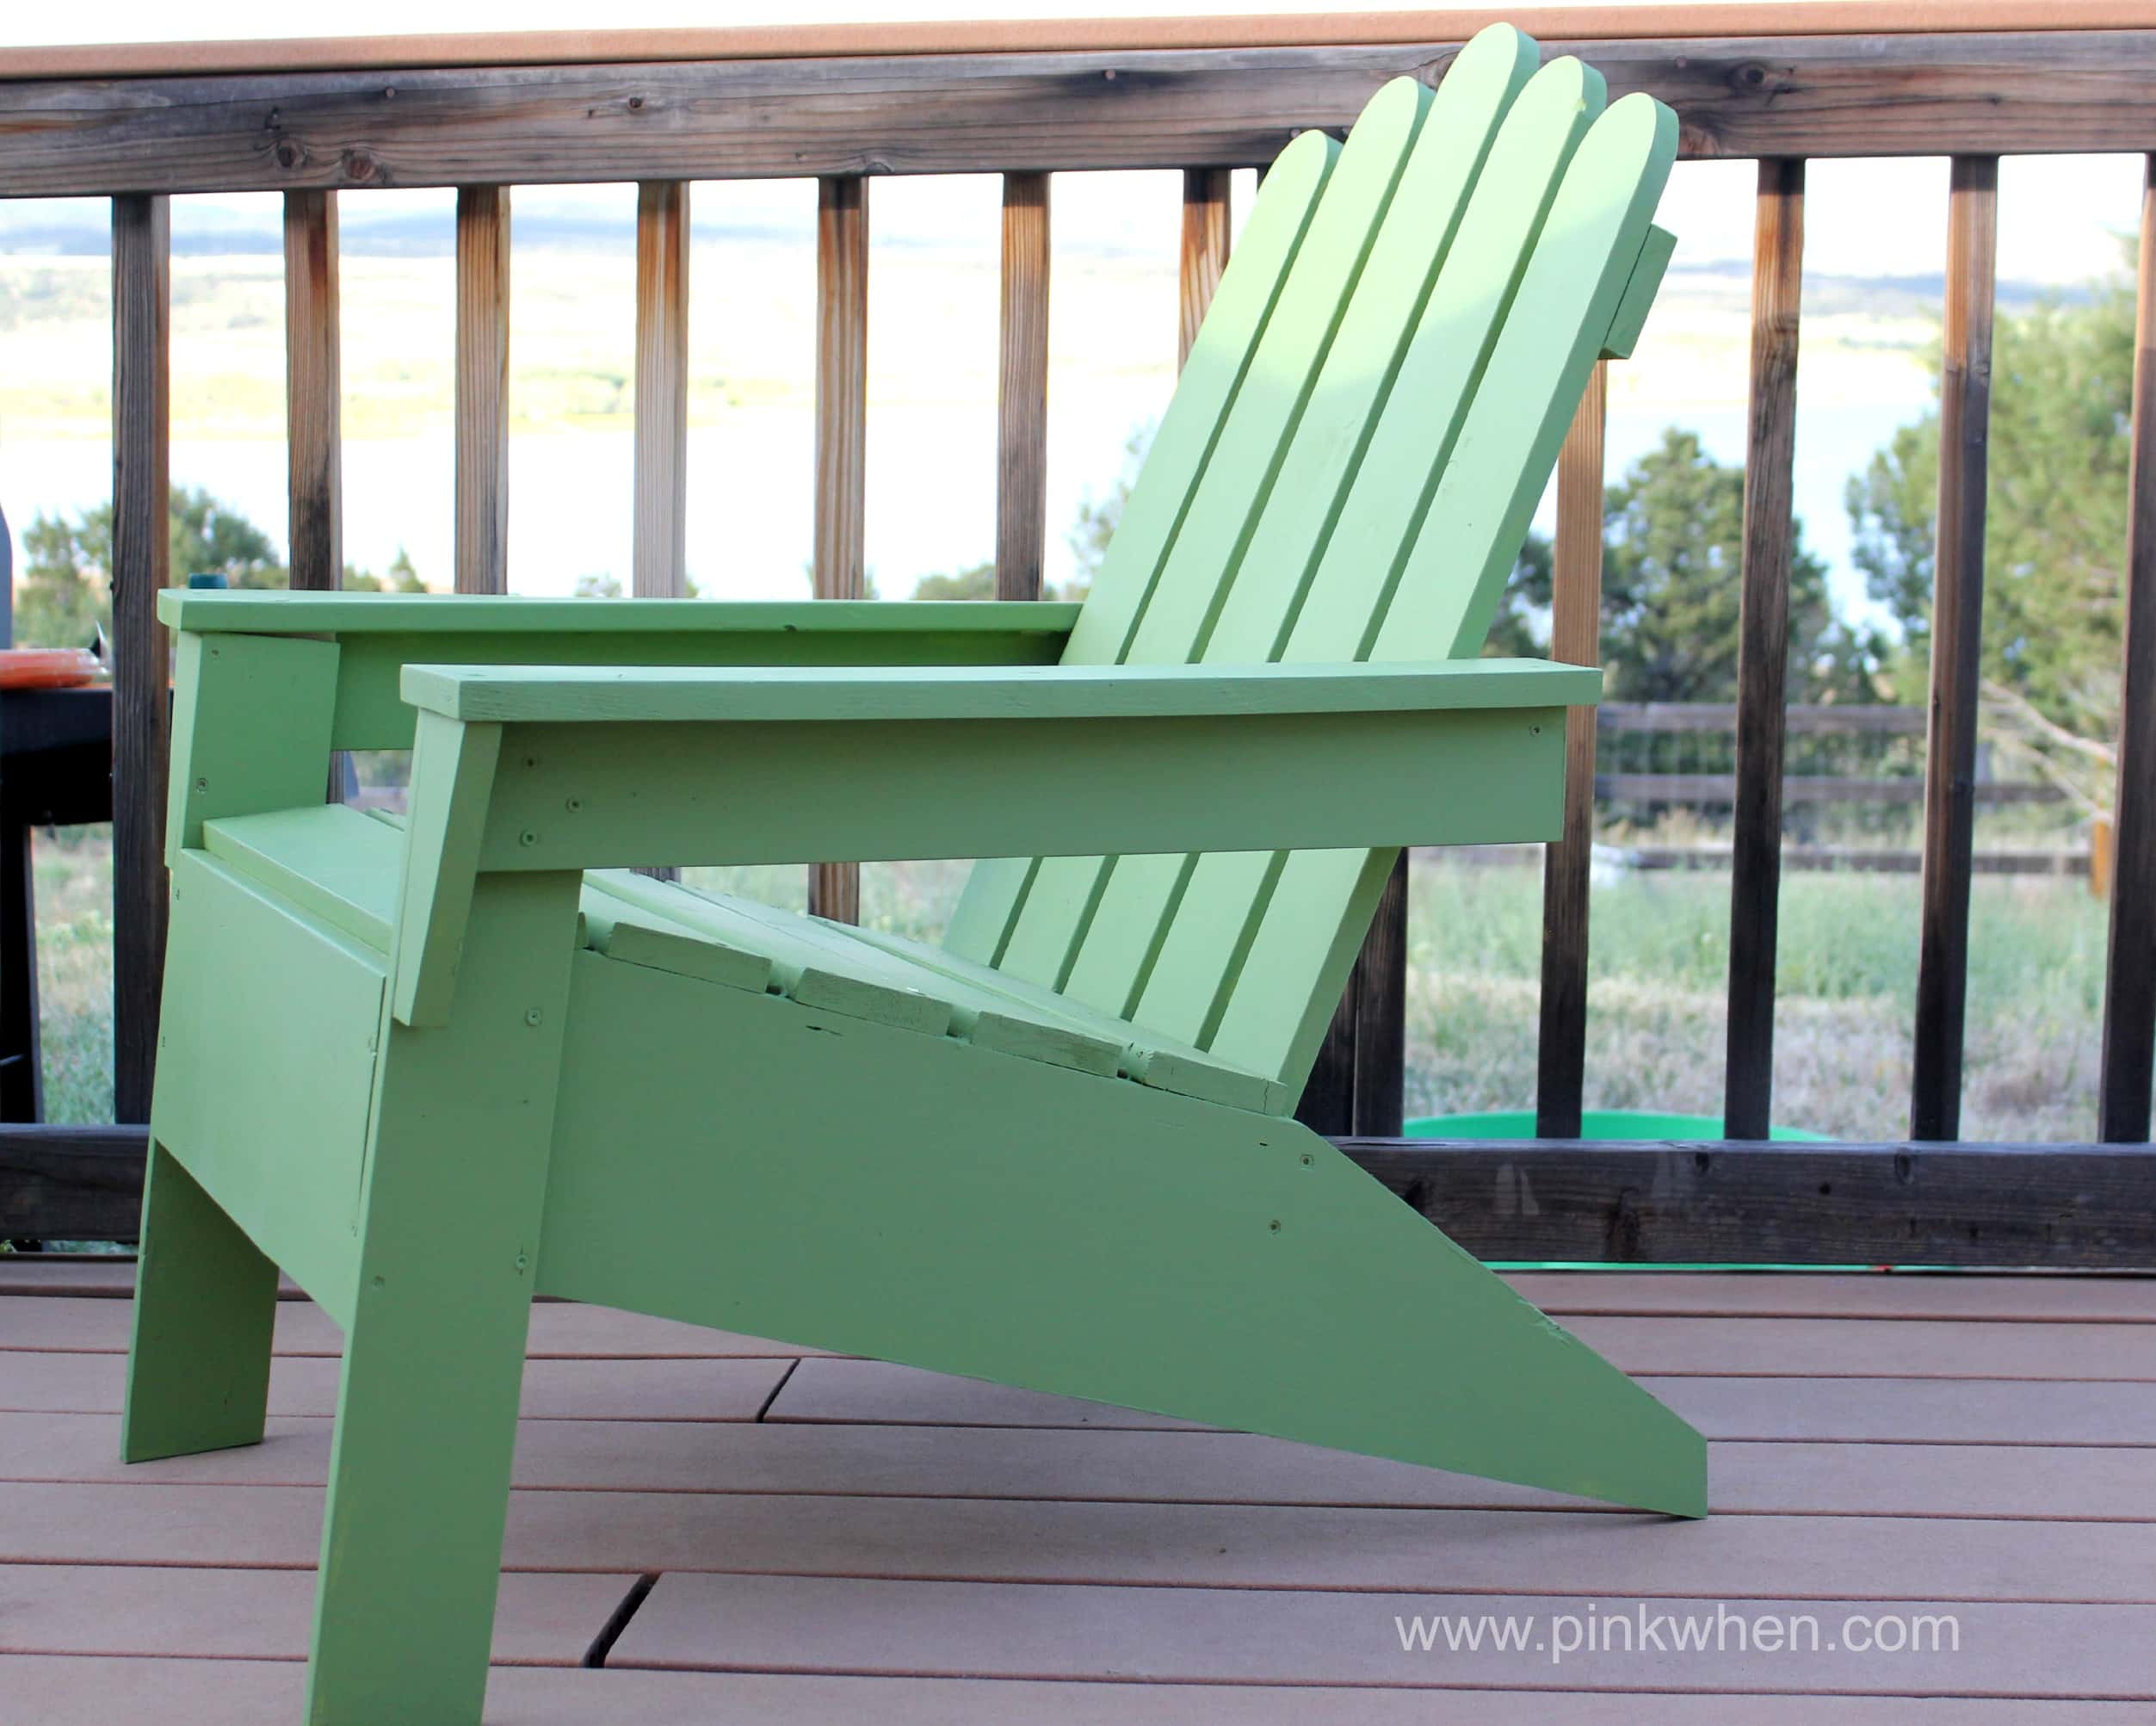 Diy Adirondack Chairs Page 2 Of 2 Pinkwhen